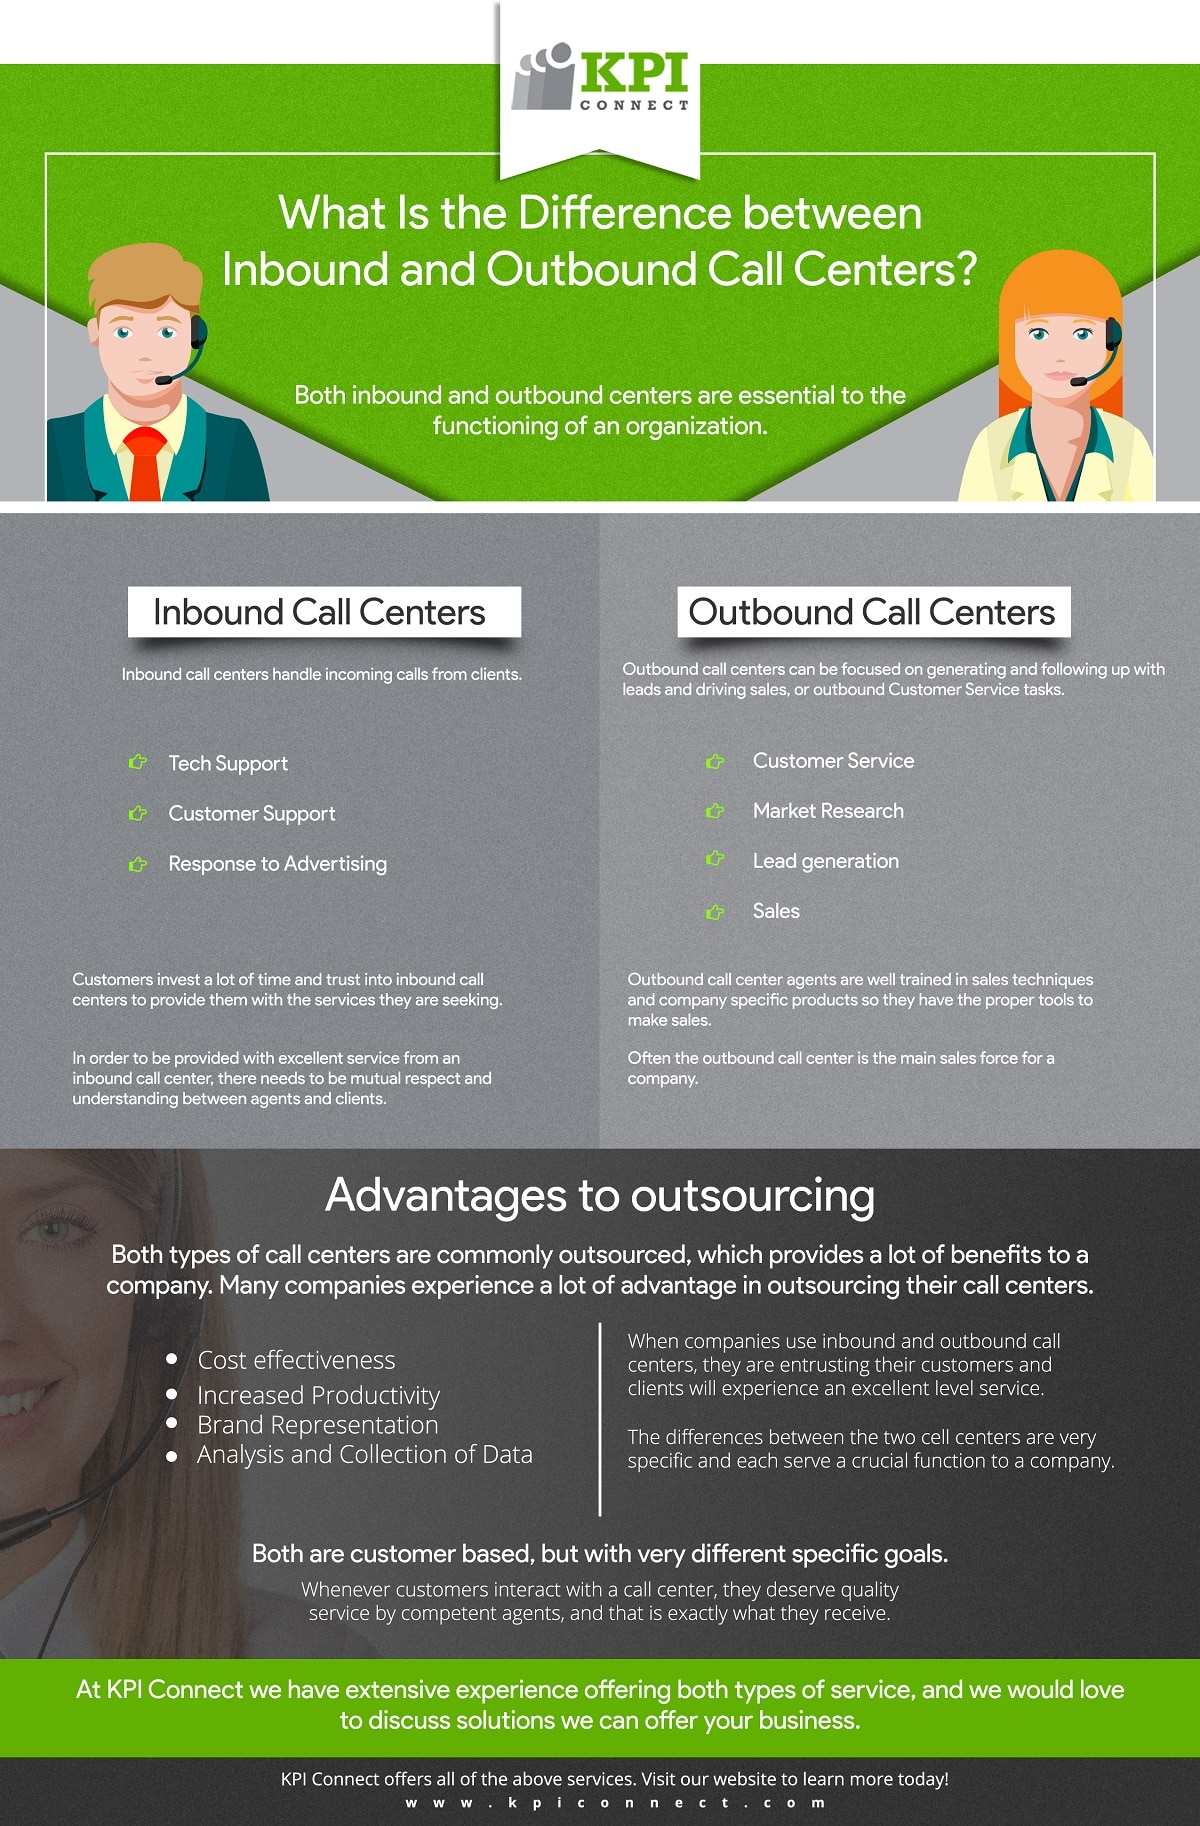 infographic discussing difference between outbound and inbound call centers